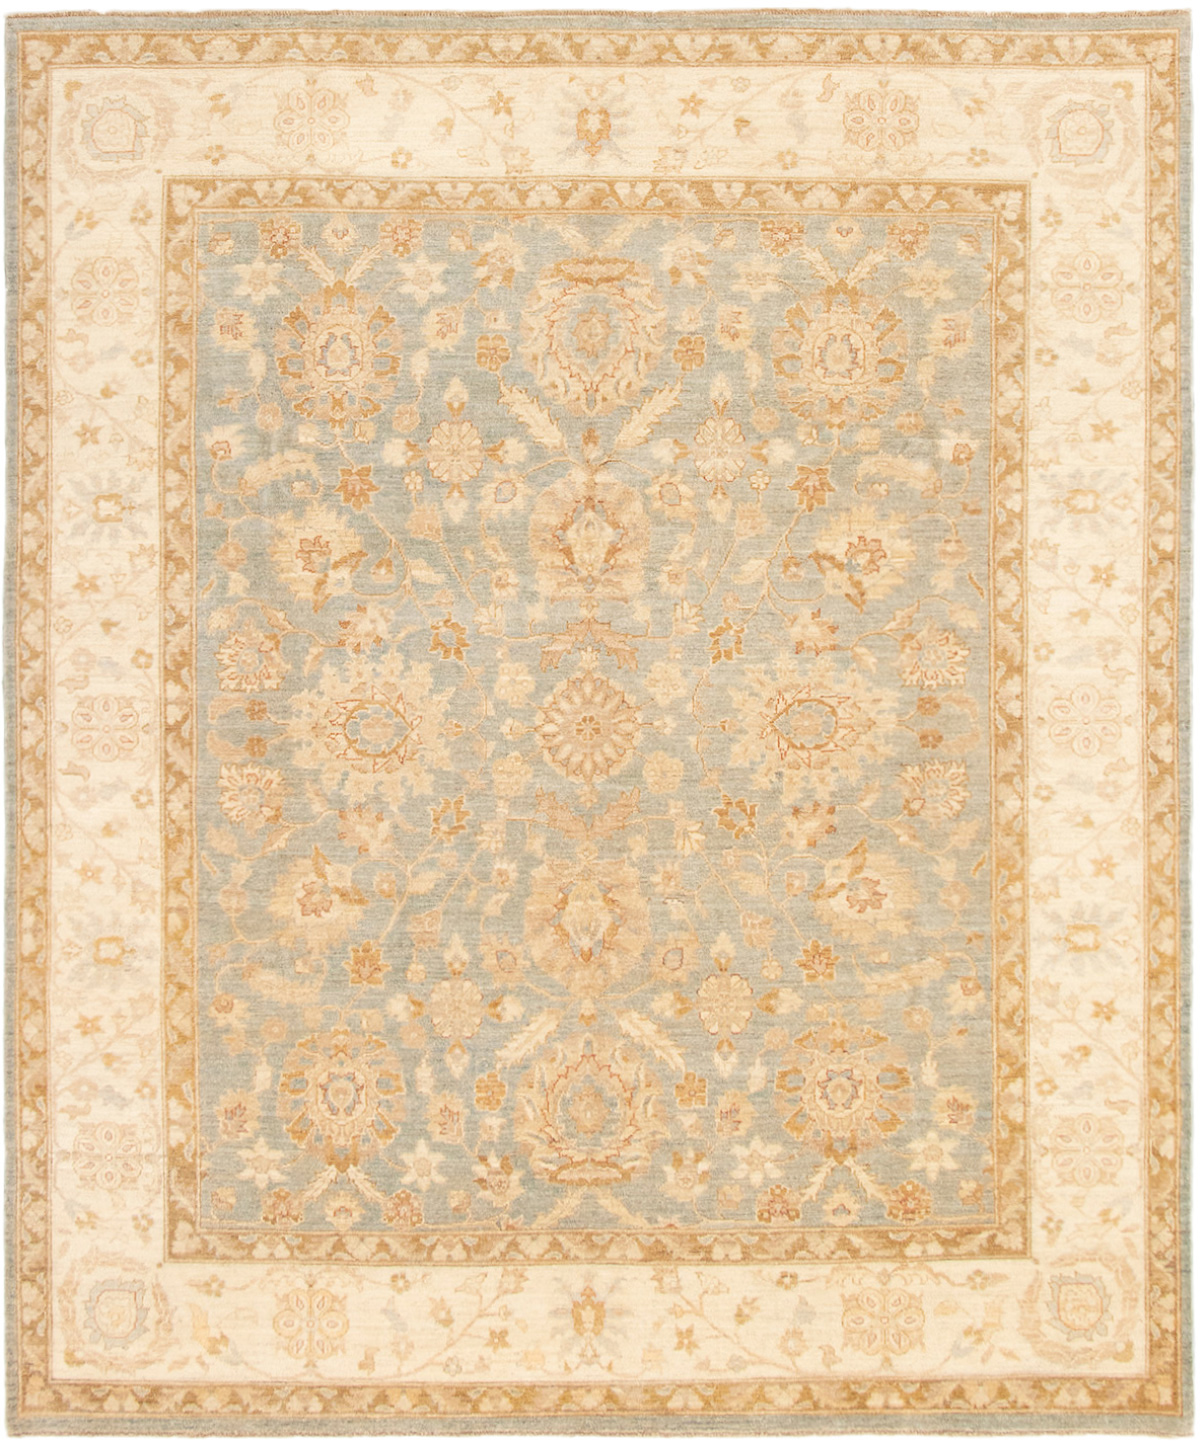 """Hand-knotted Peshawar Finest Light Blue  Wool Rug 8'5"""" x 9'10"""" Size: 8'5"""" x 9'10"""""""